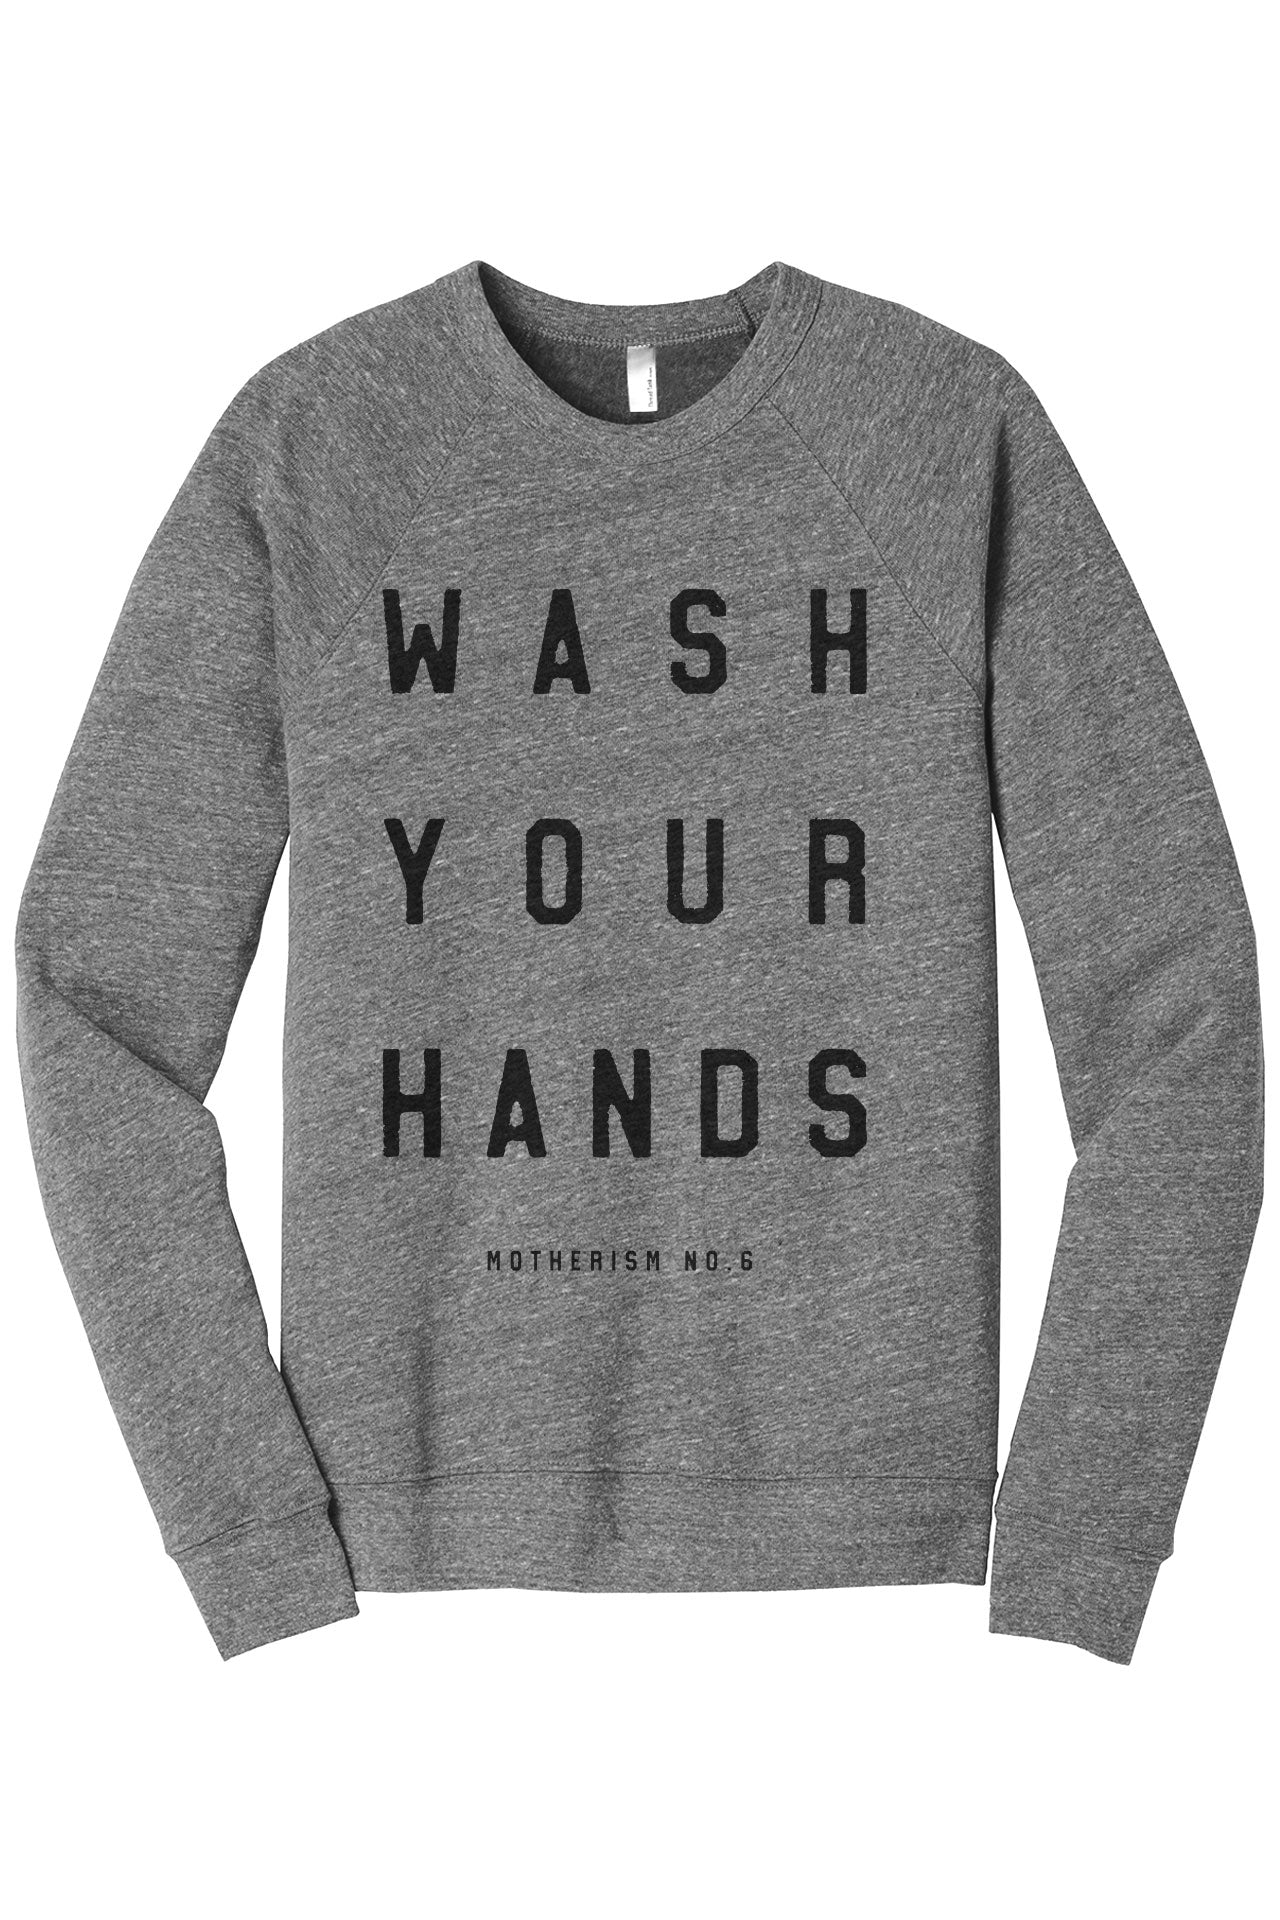 Wash Your Hands Motherism Women's Cozy Fleece Longsleeves Sweater Rouge Closeup Details